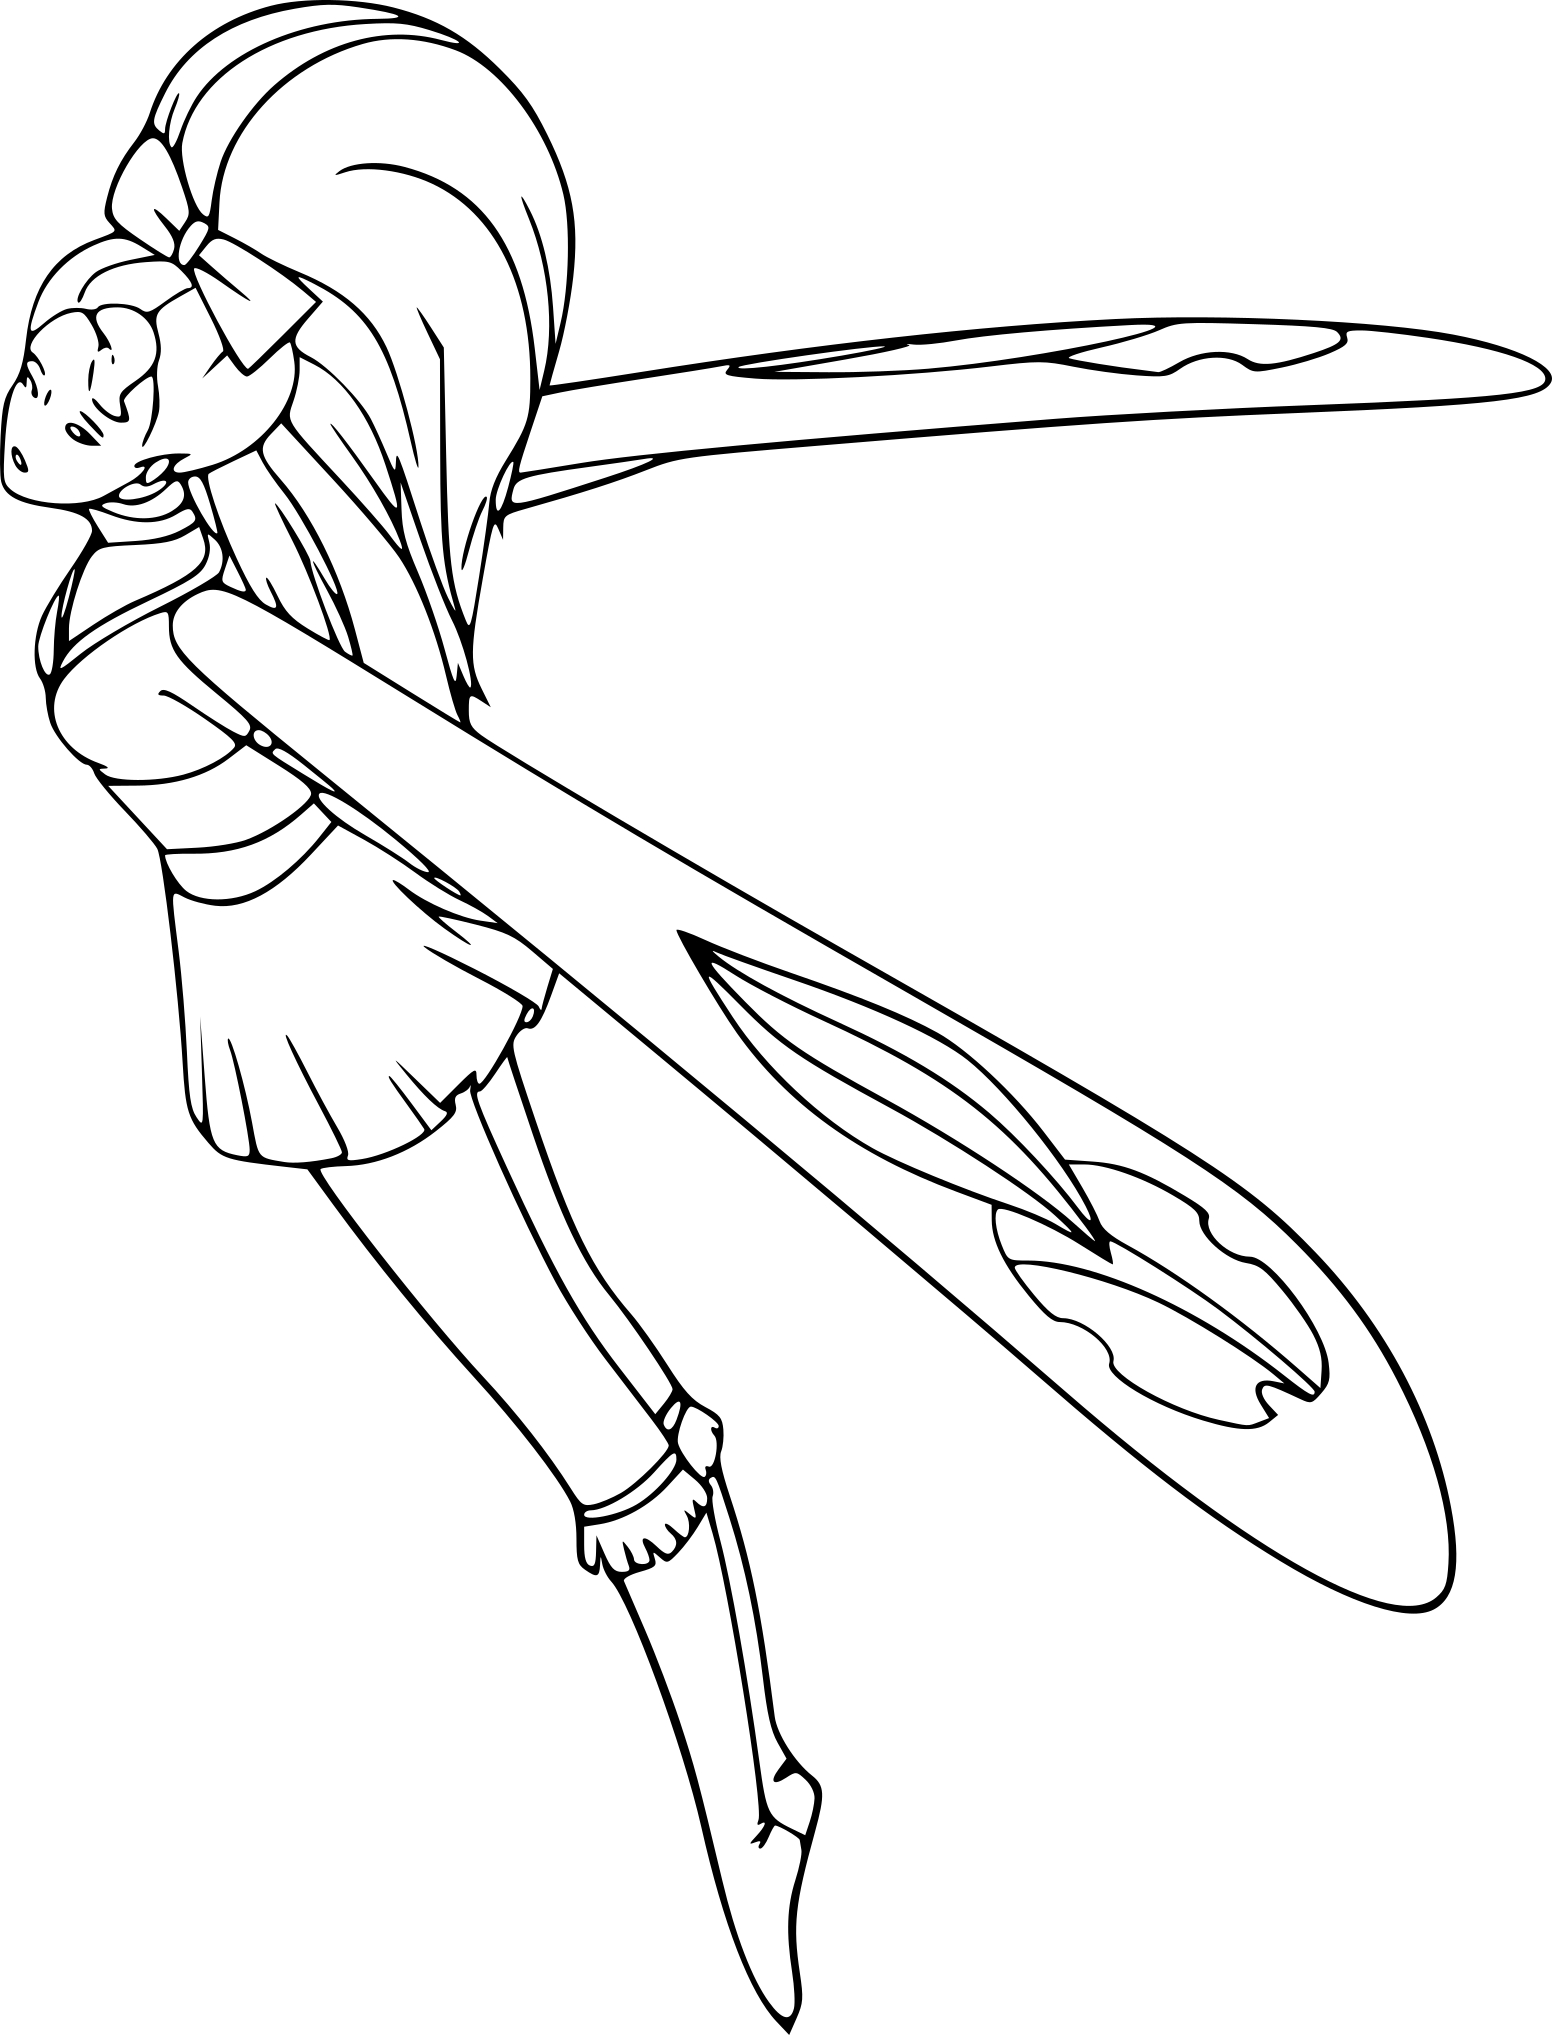 Sky Dancer dessin